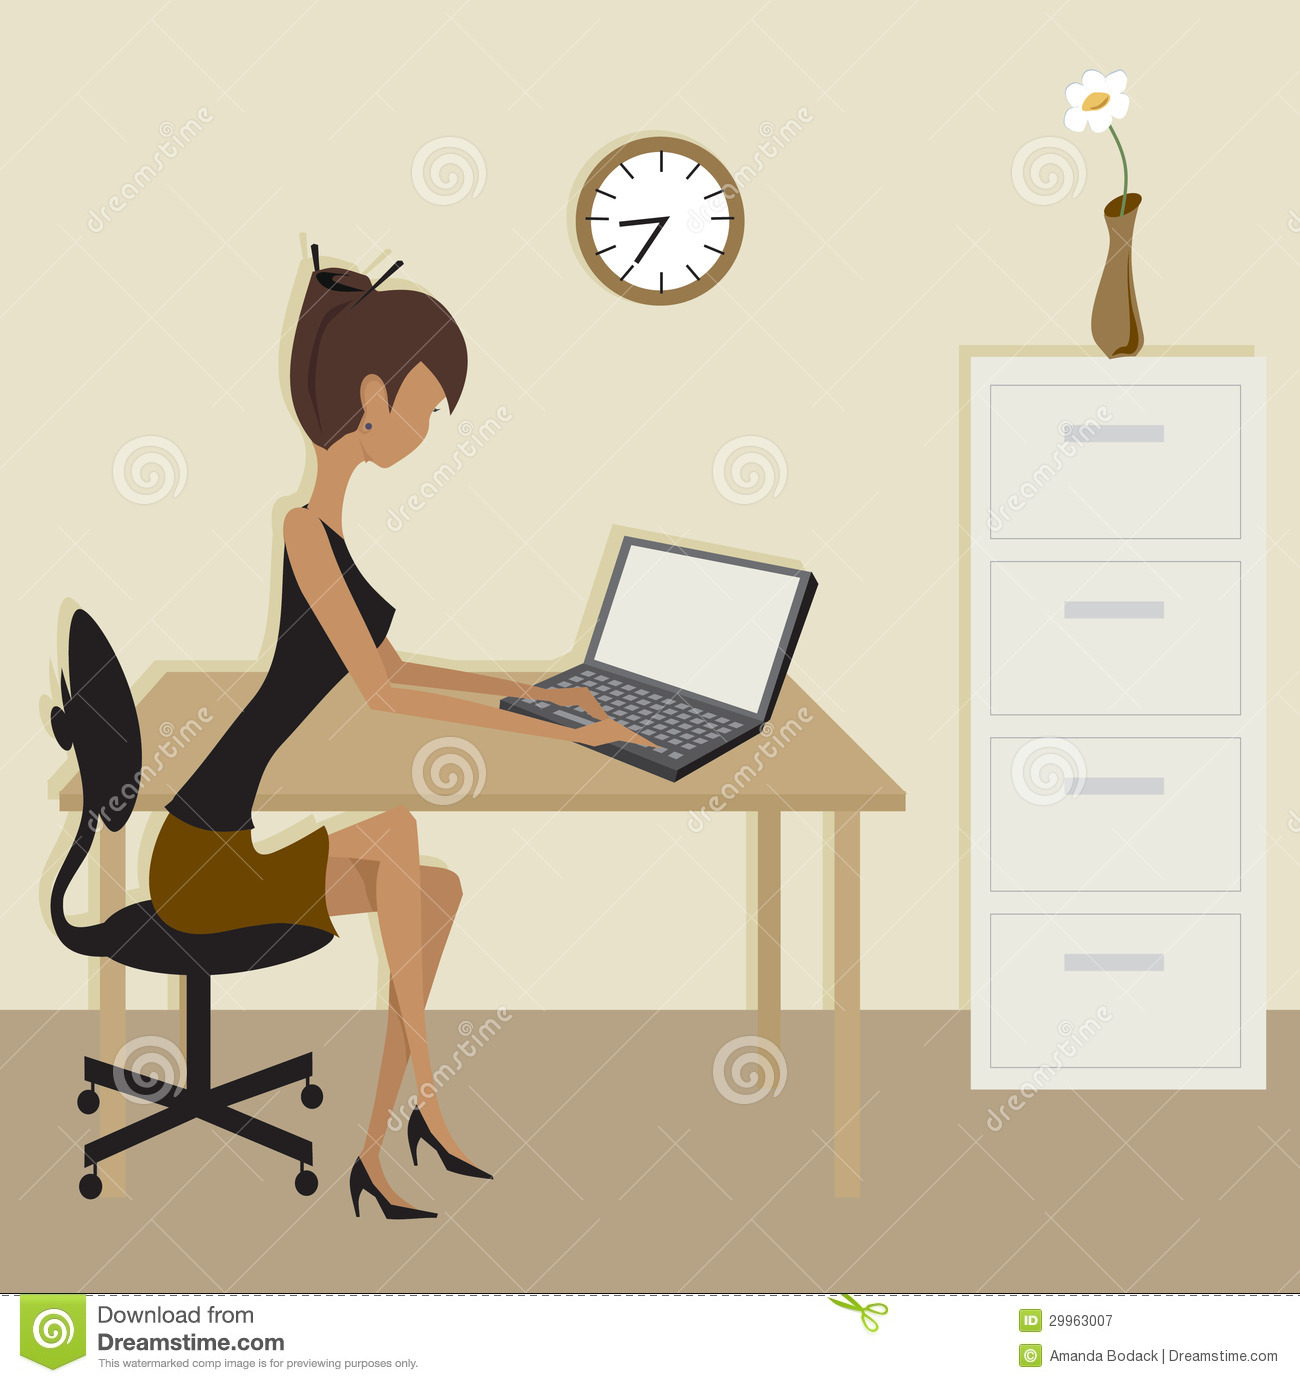 ms office animated clip art - photo #24